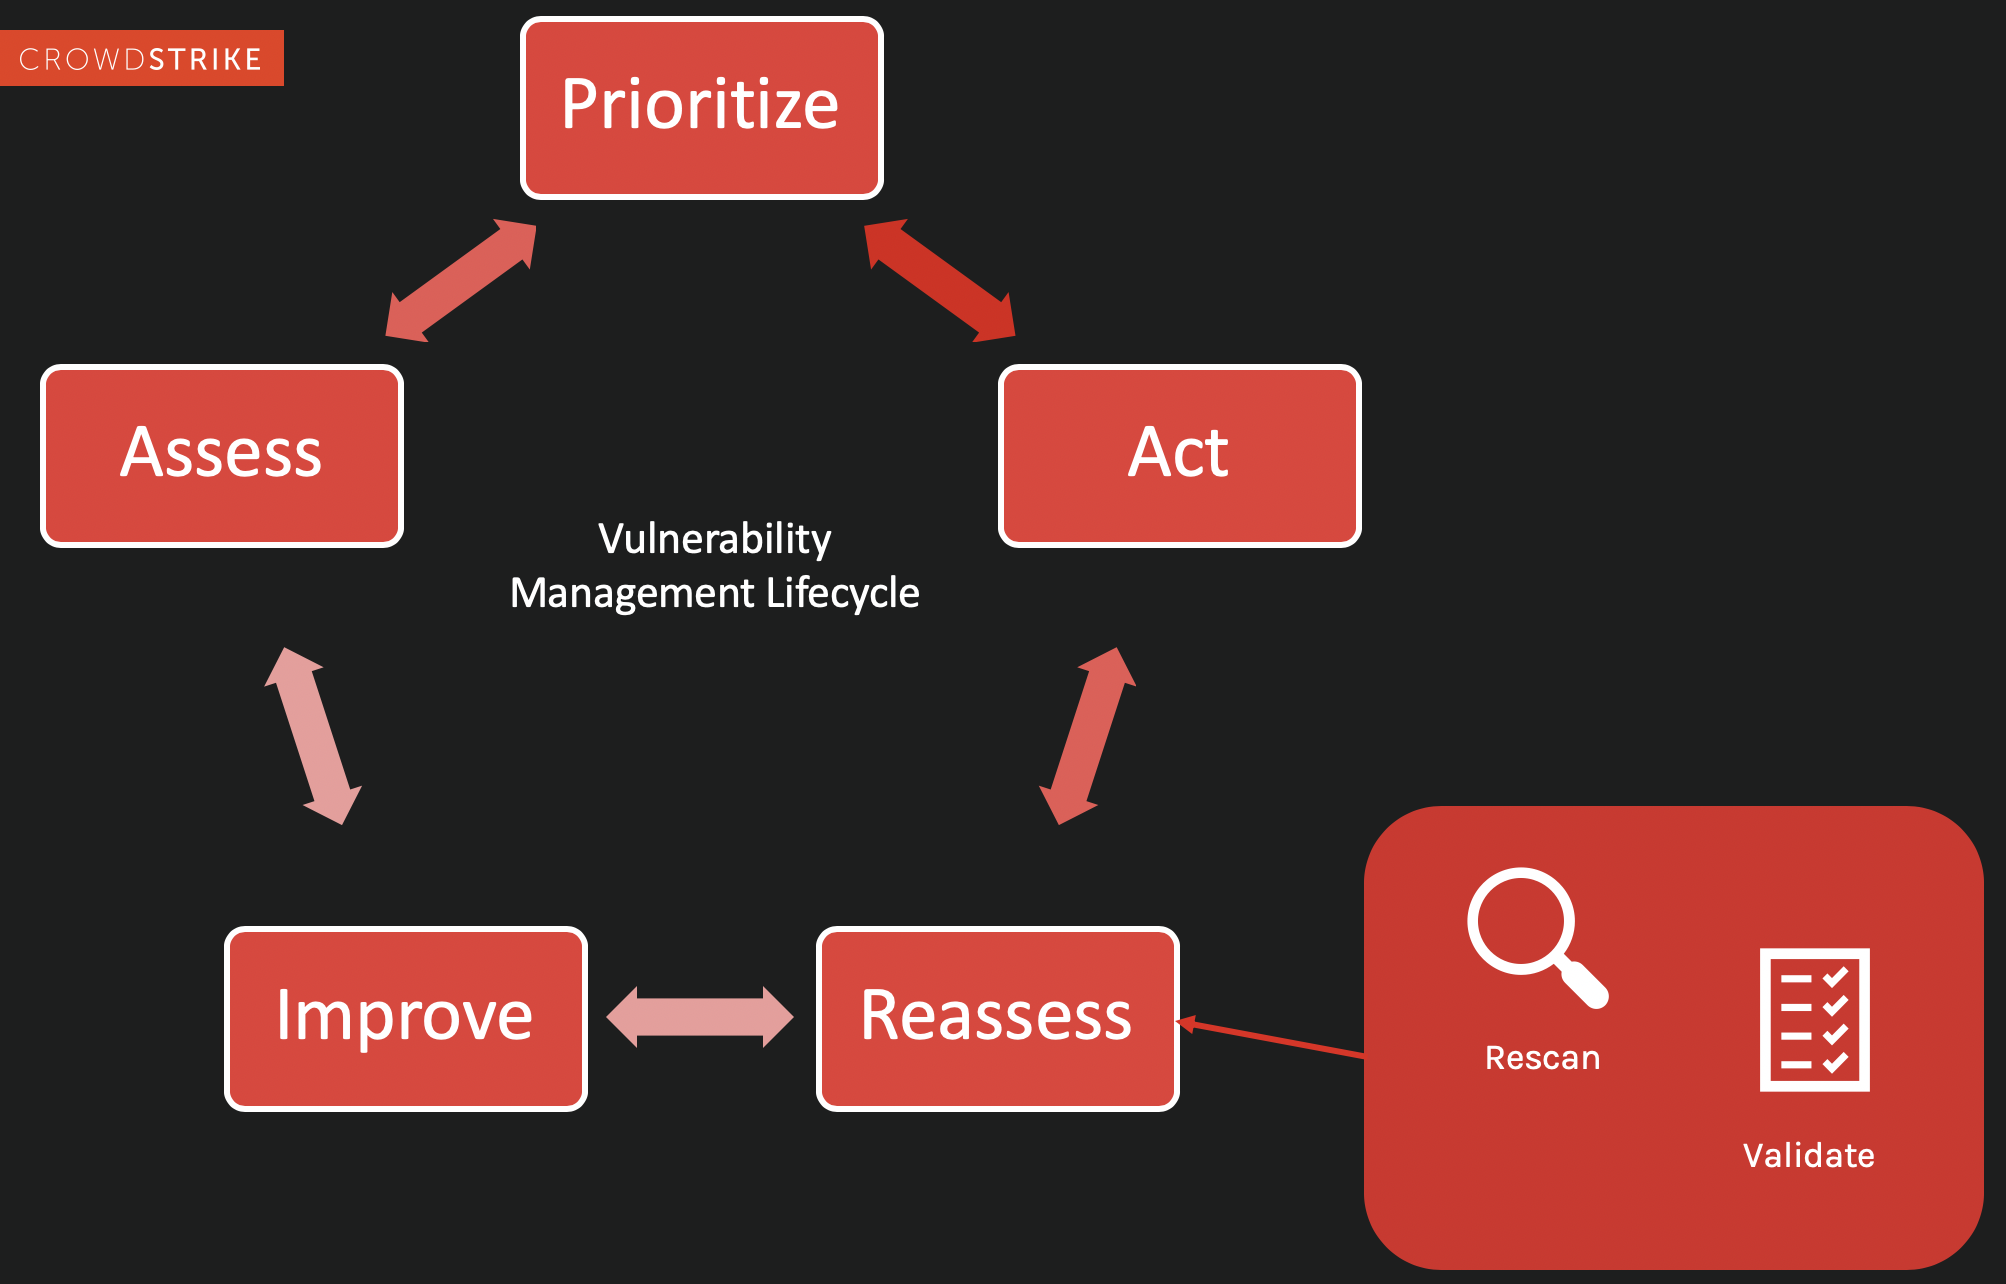 Reassess aspect of the vulnerability management cycle